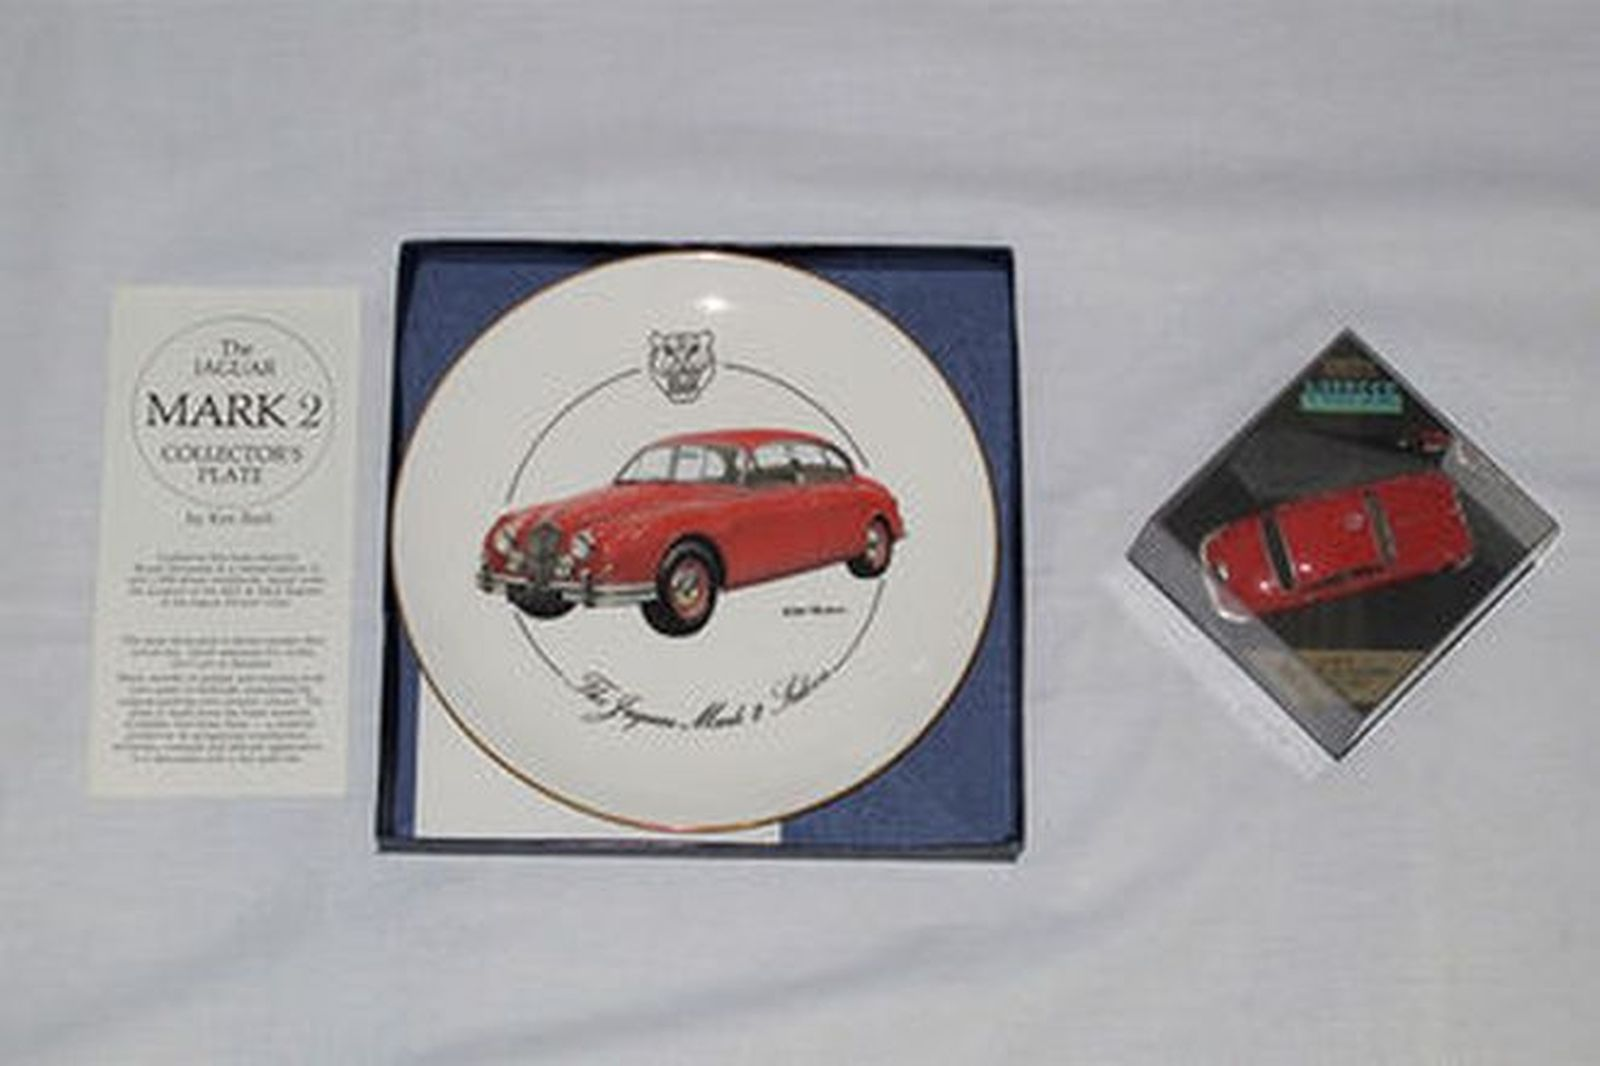 Books x 11 - Original Series Books & Jaguar 240 Model (scale 1:43) and Collector Plate